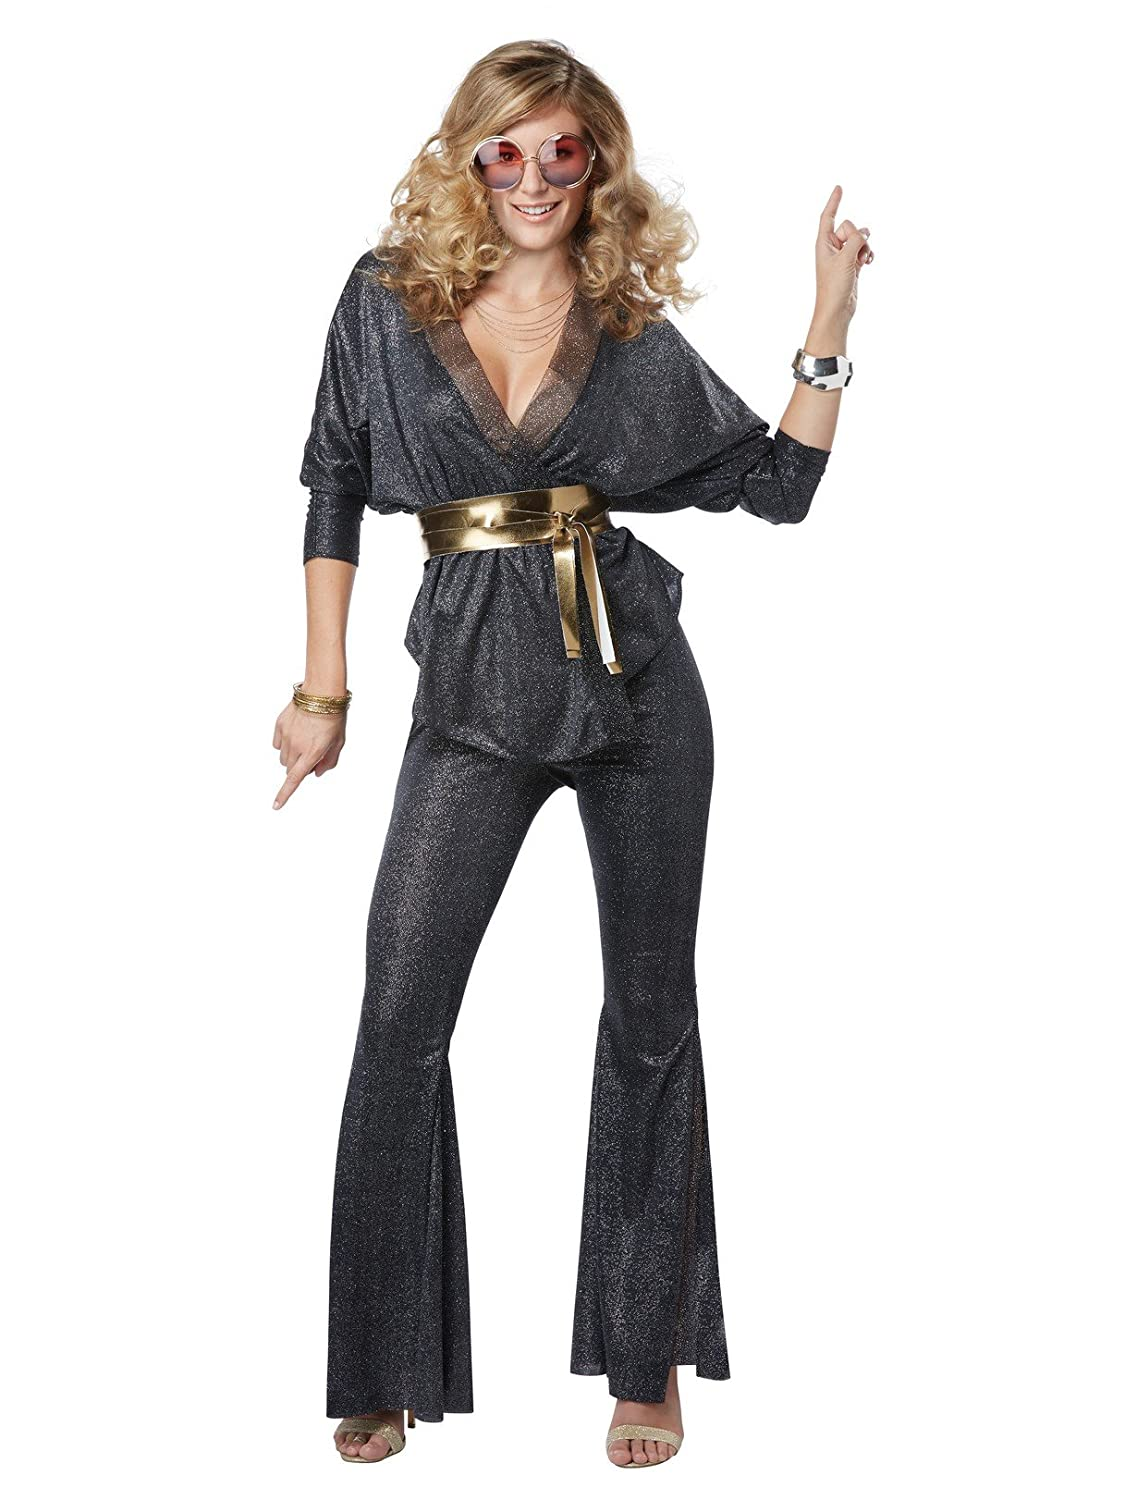 Vintage High Waisted Trousers, Sailor Pants, Jeans Dazzler Disco Costume for Adults $29.13 AT vintagedancer.com